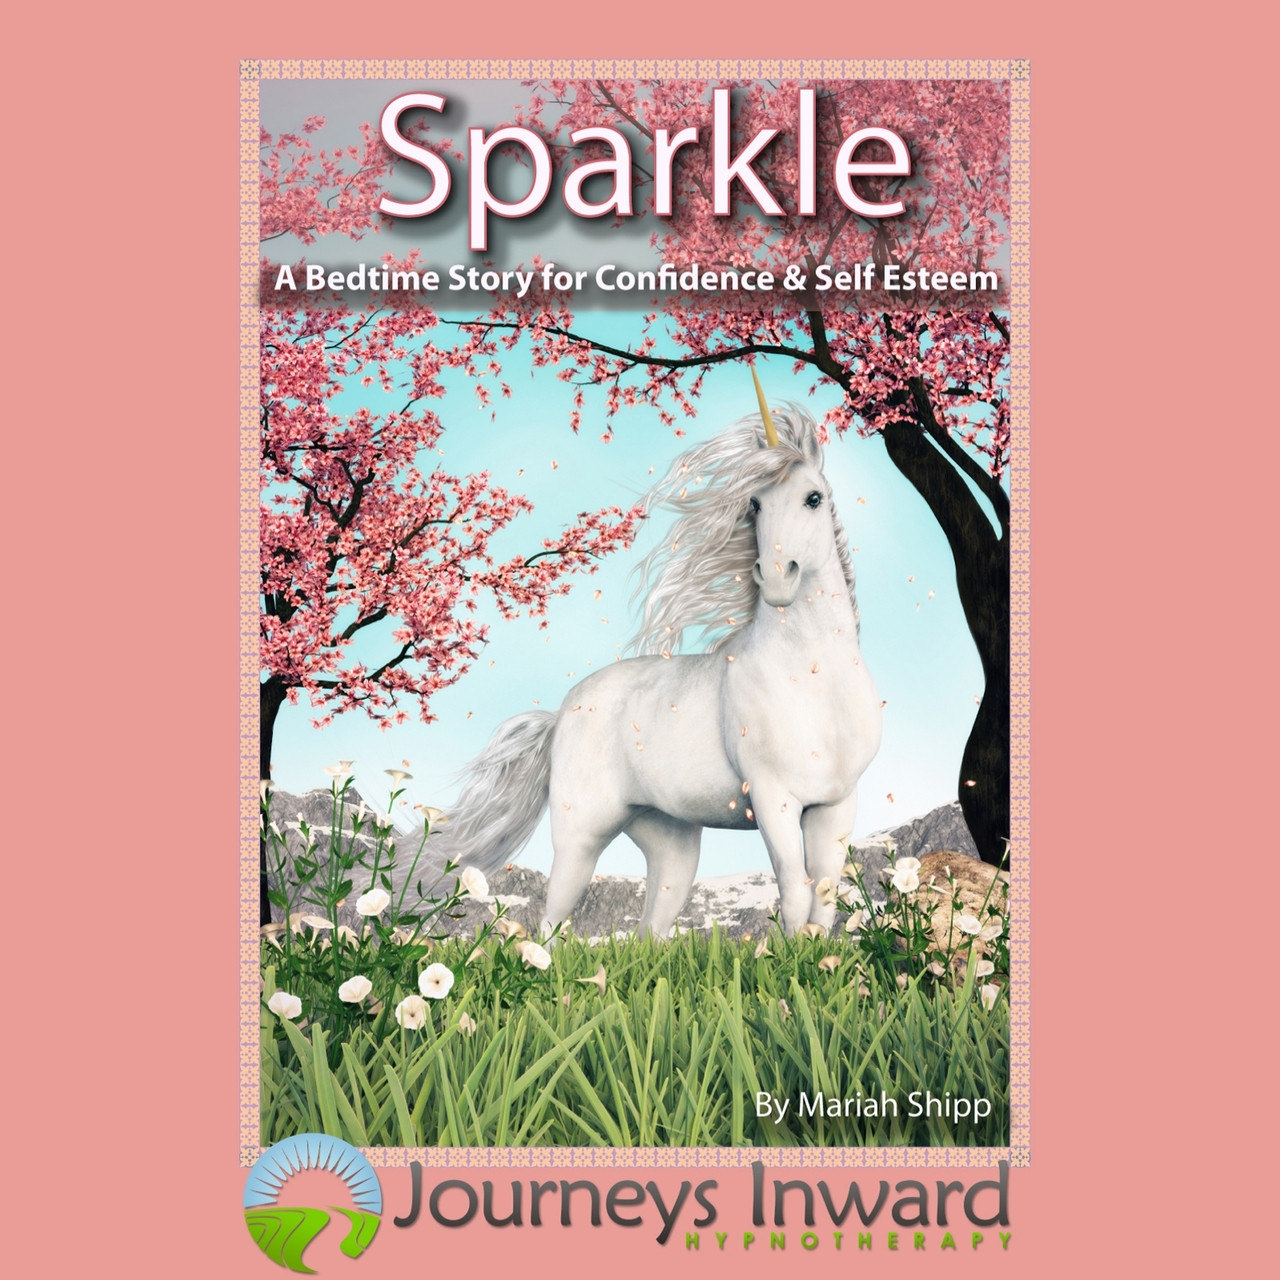 Sparkle - A bedtime story for confidence and self esteem